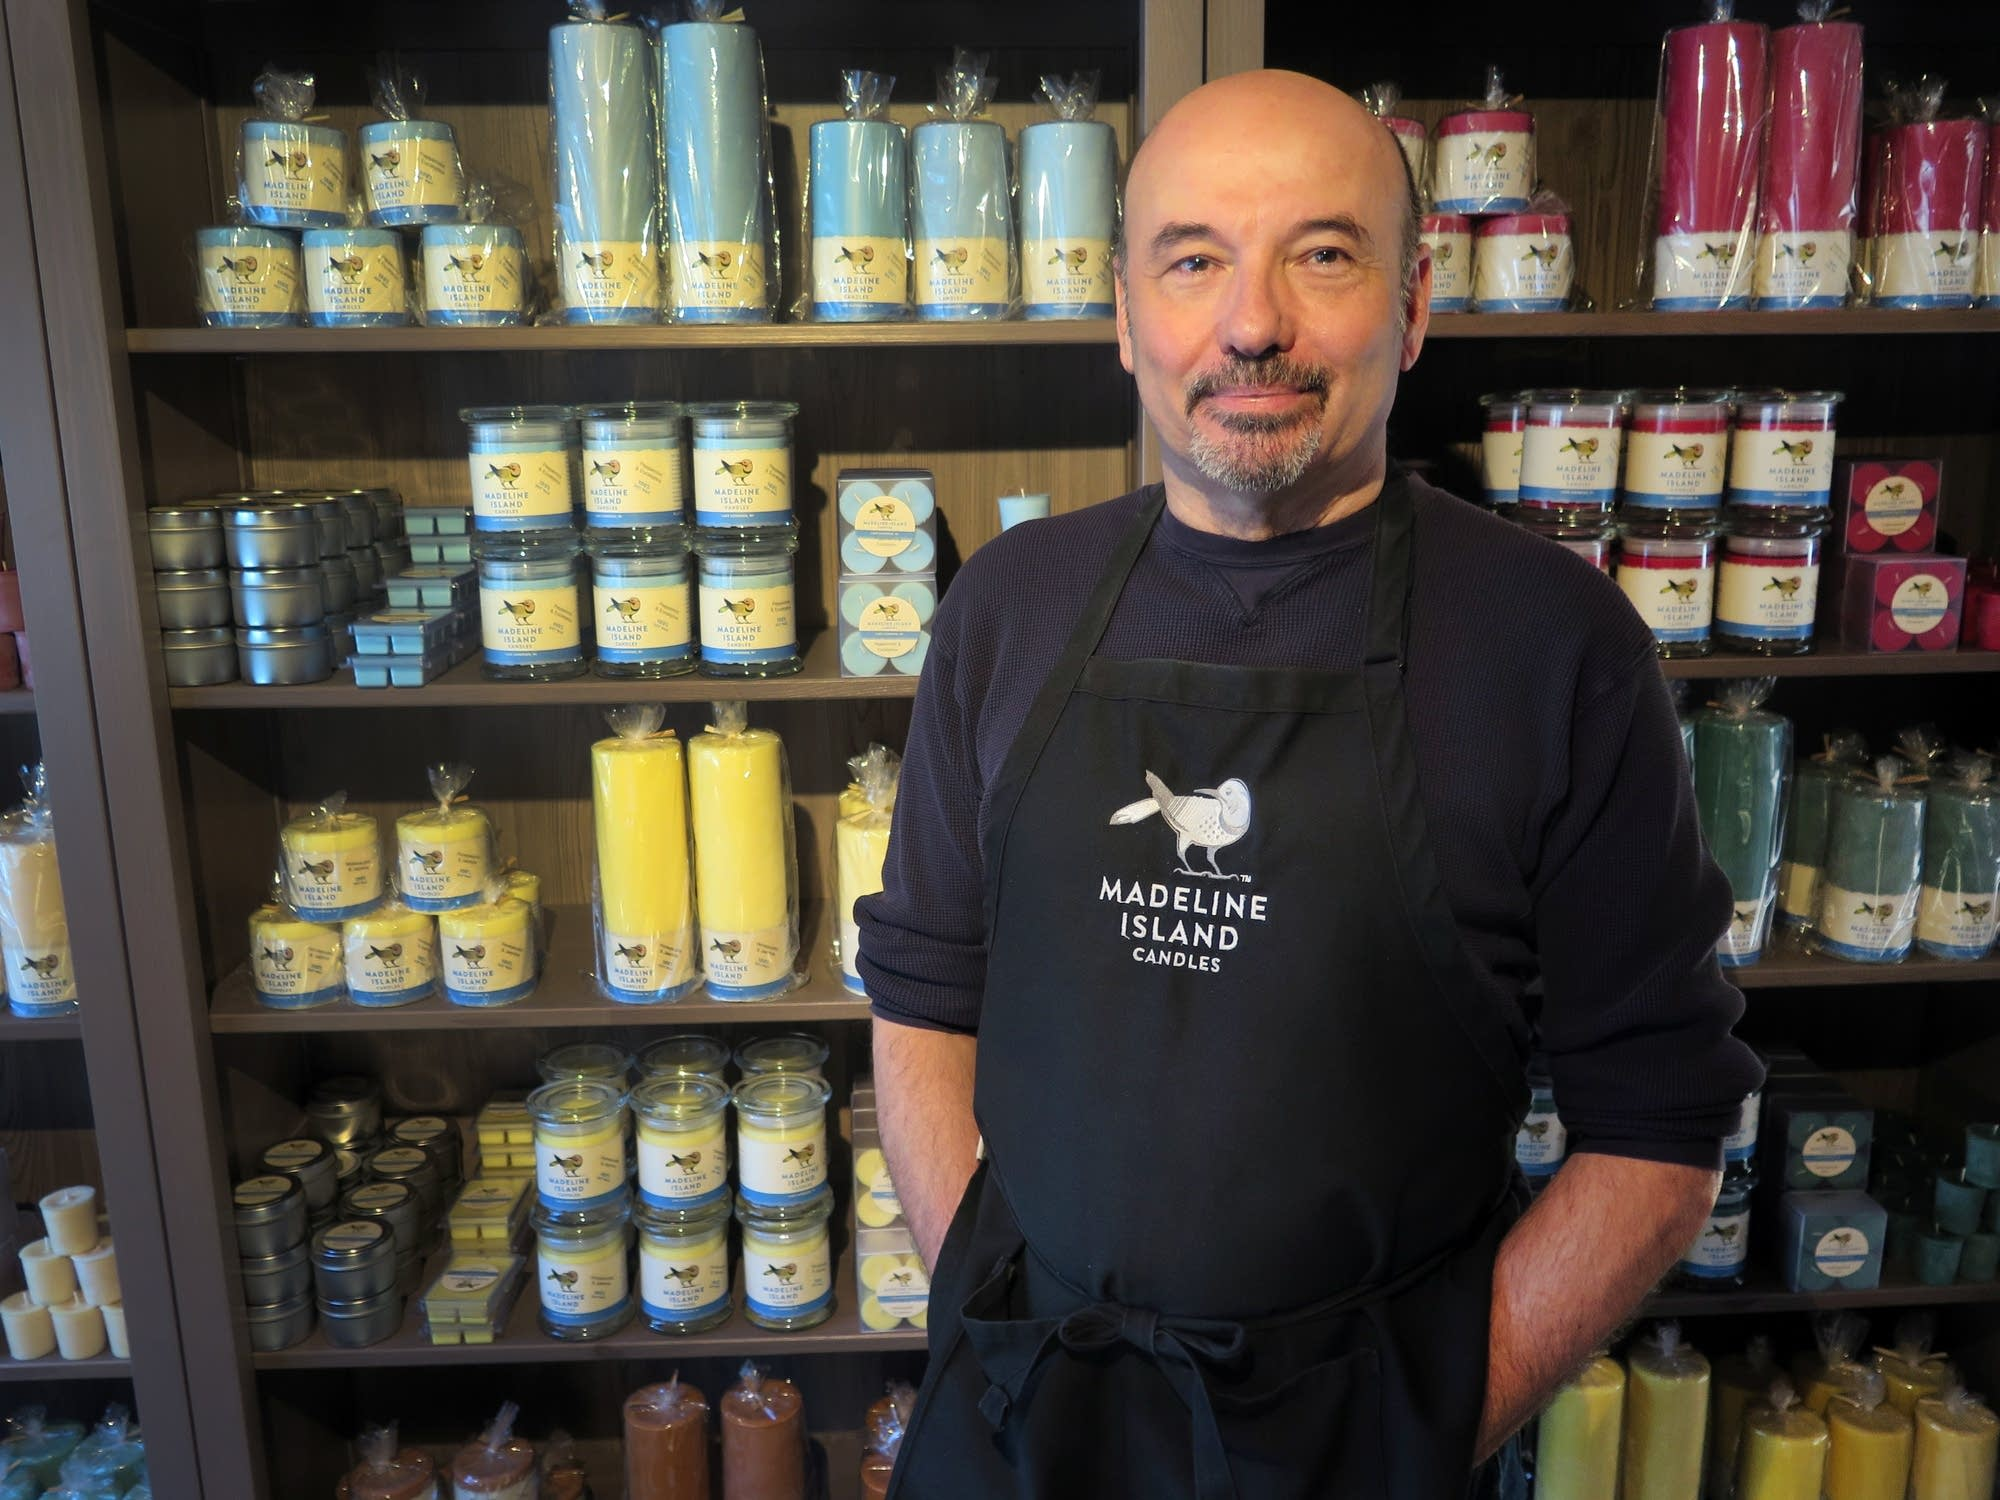 Michael Childers, co-owner of Madeline Island Candles